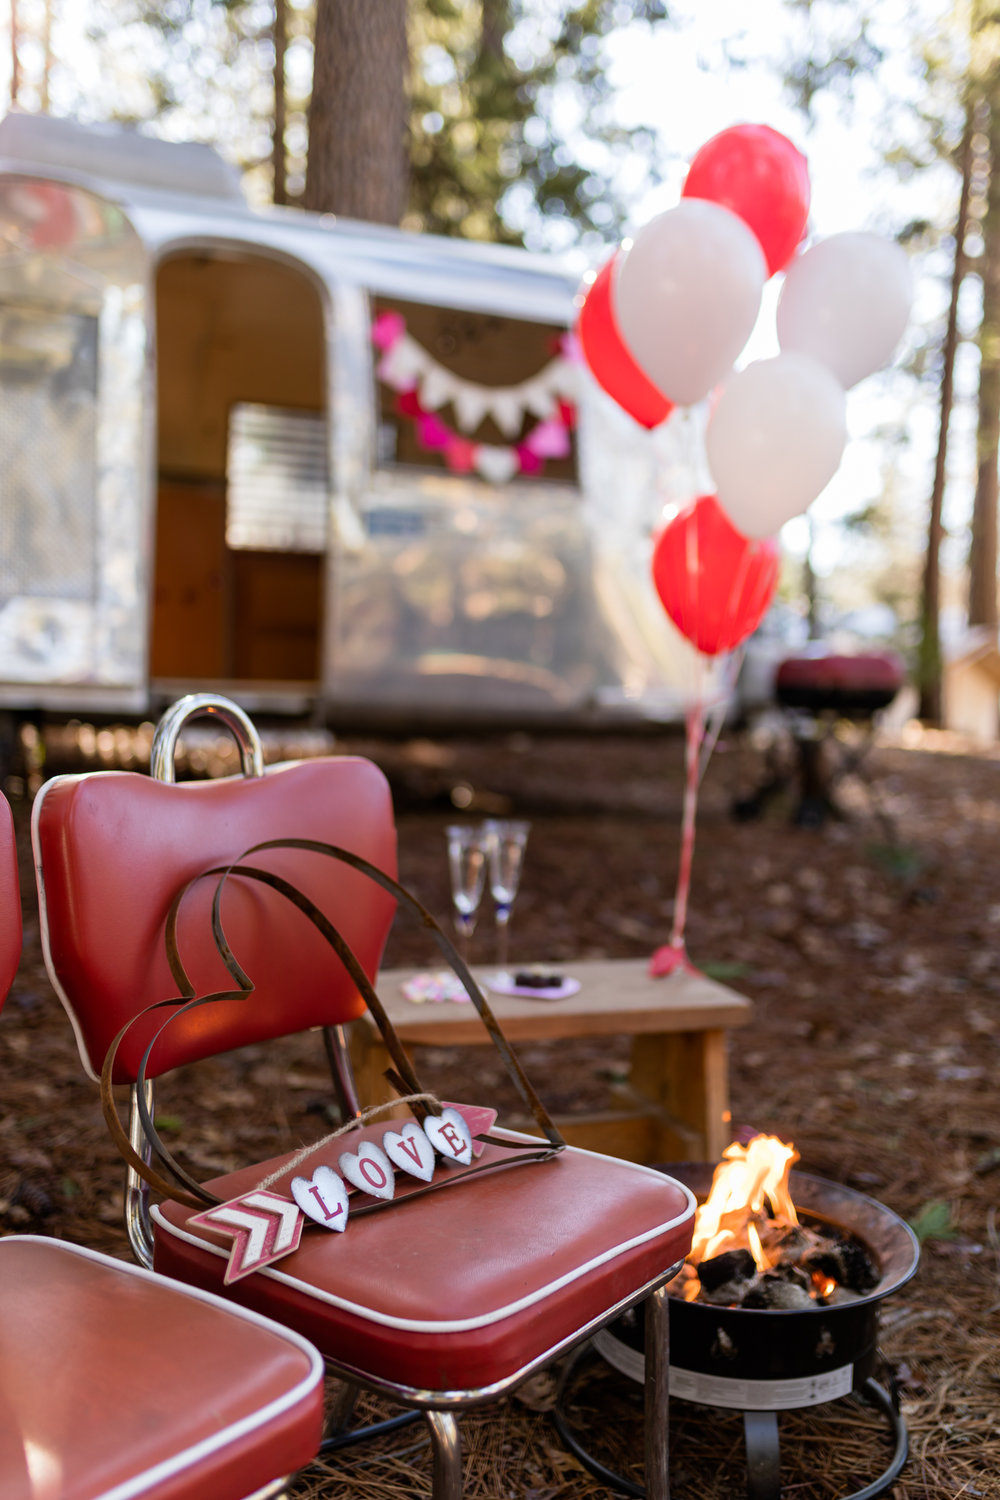 Inn Town Campground Valentine's Day Decorating | Lenkaland Photo